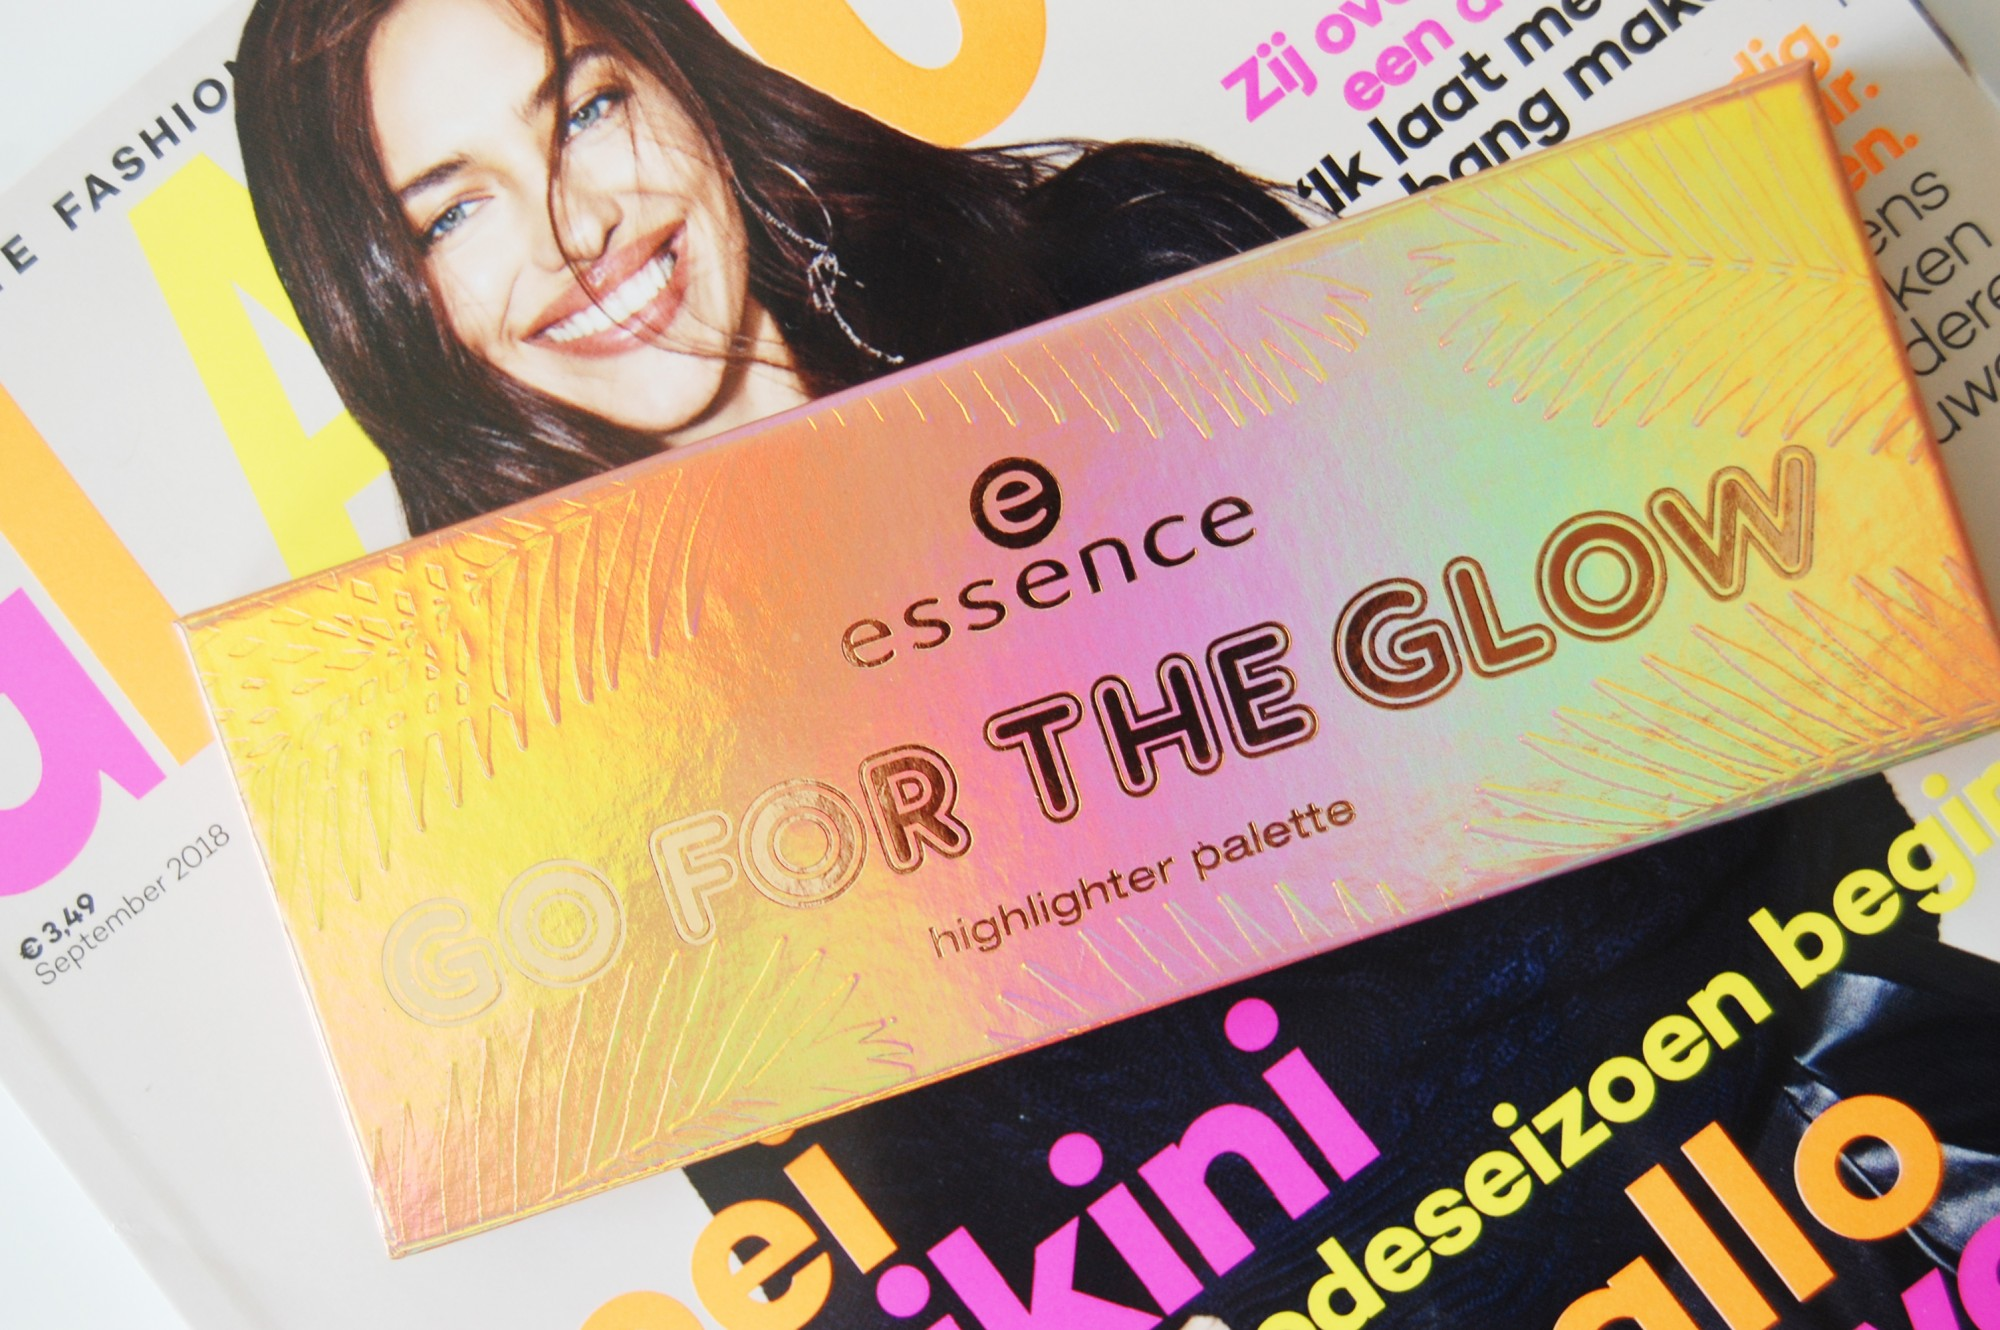 Essence Go For The Glow highlighter